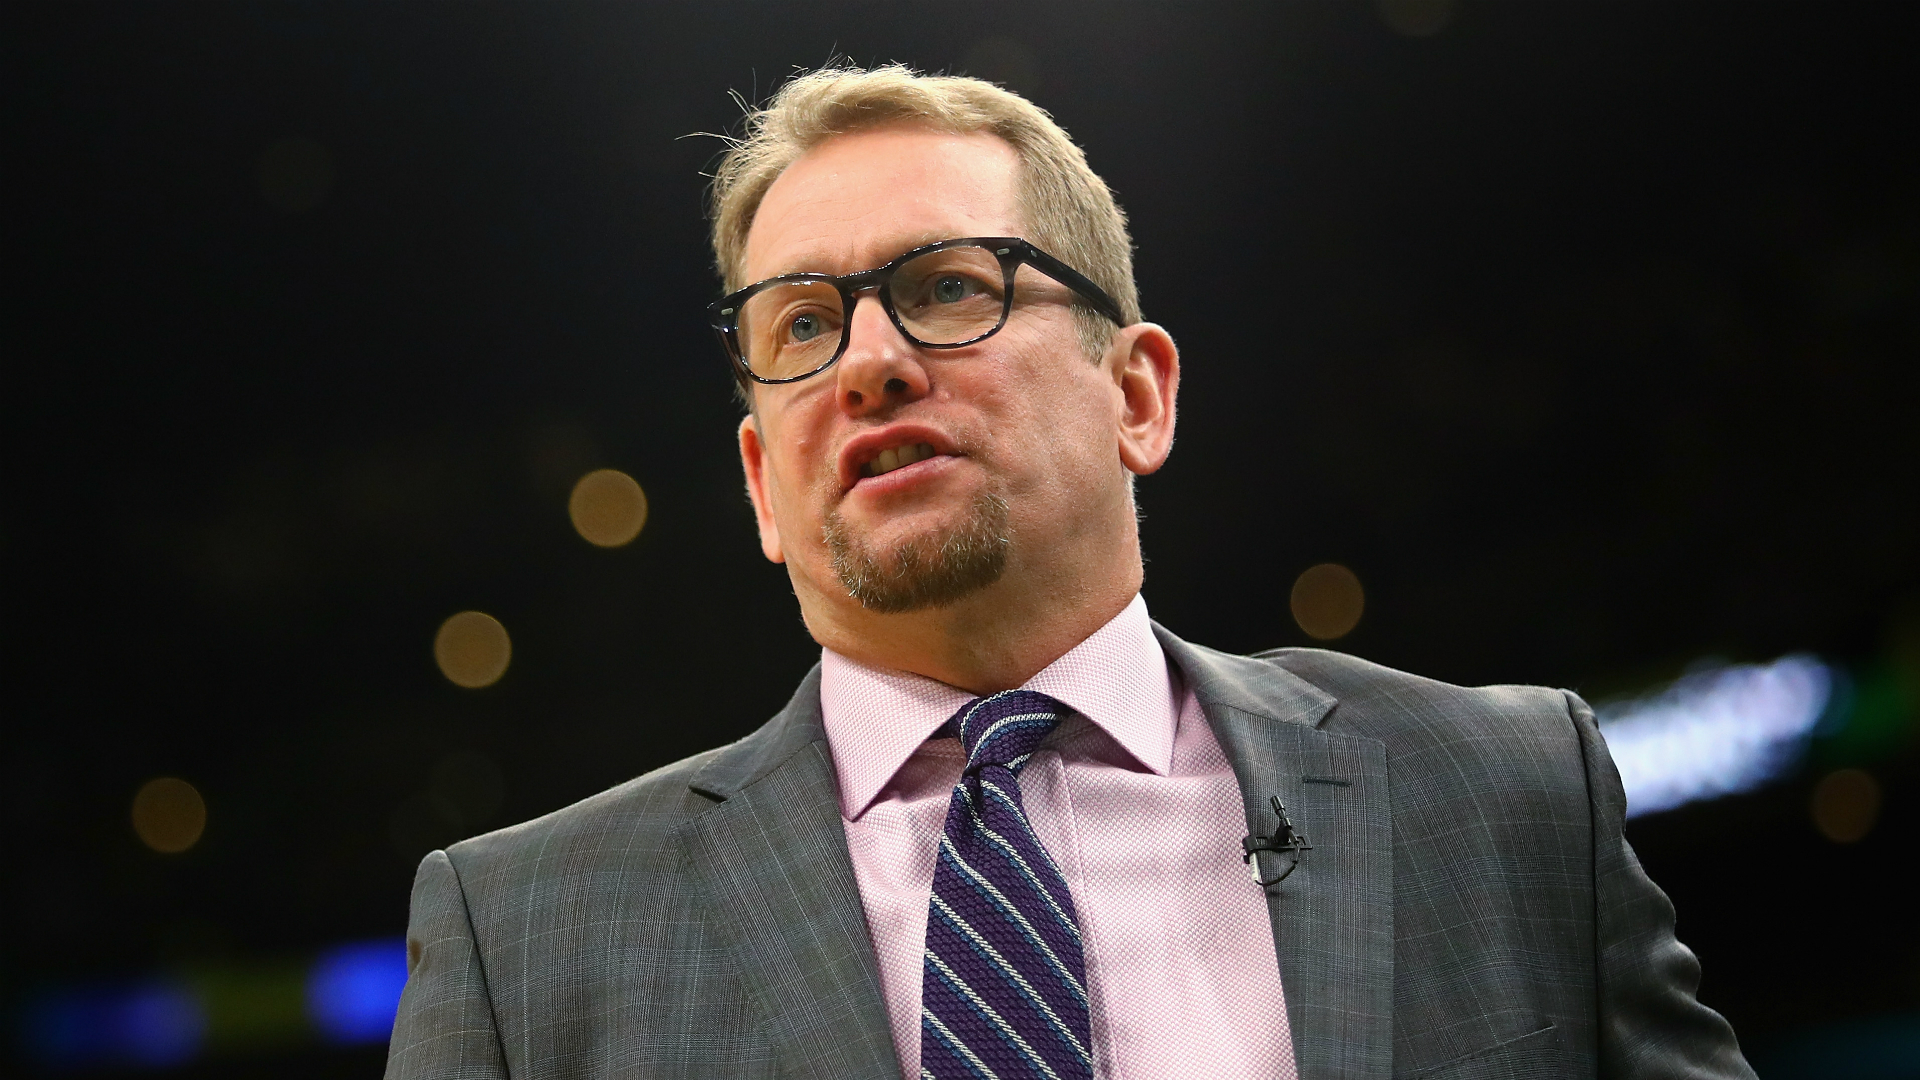 NBA Finals 2019: Nick Nurse says he called late timeout to give Raptors a break